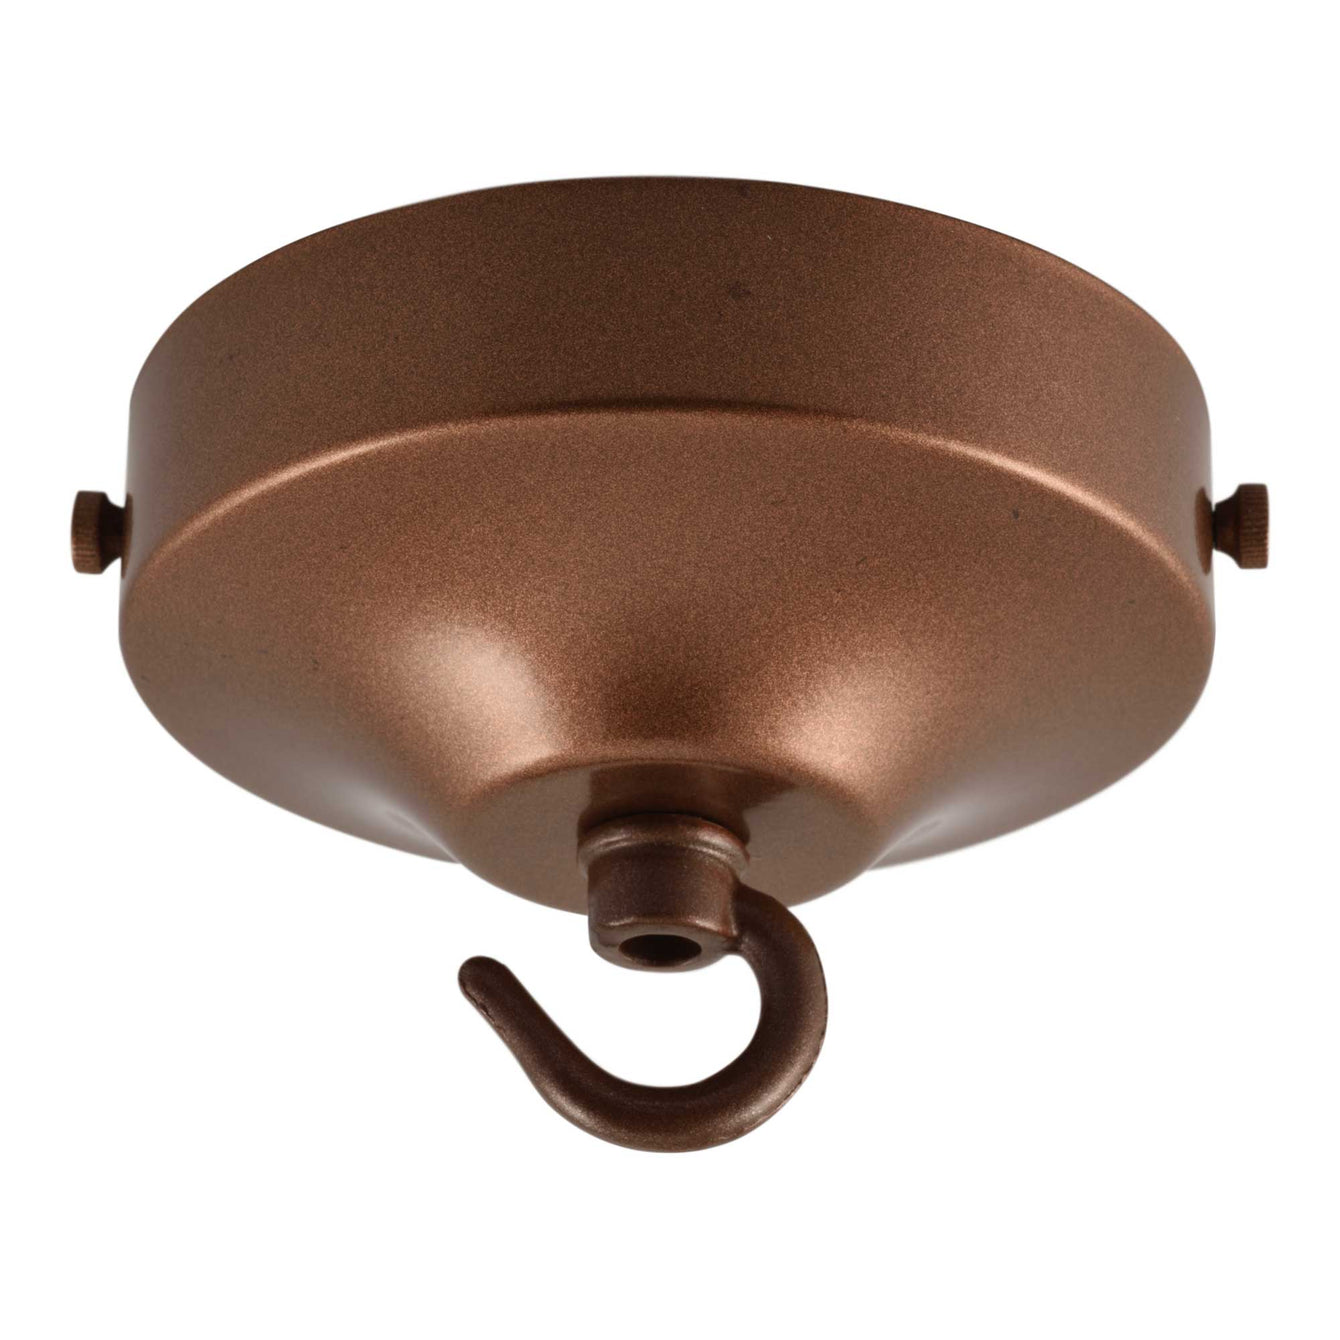 ElekTek 100mm Diameter Convex Ceiling Rose with Strap Bracket and Hook Metallic and Powder Coated Finishes Black